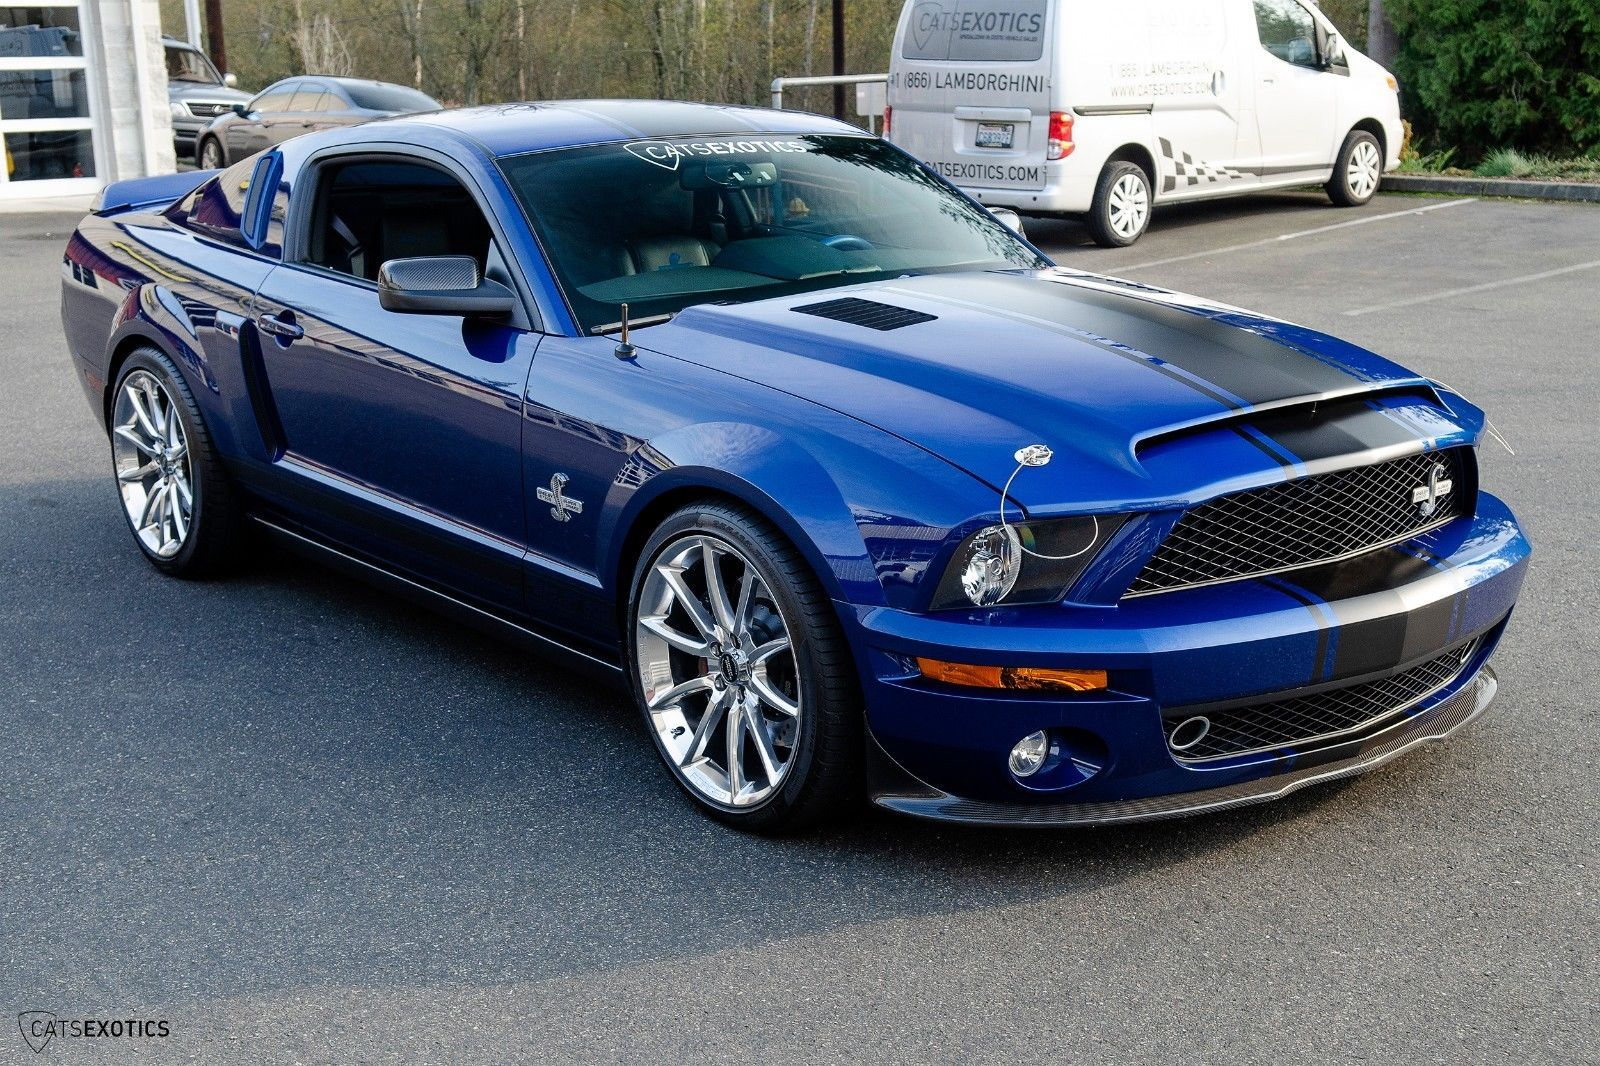 2009 Ford Mustang Shelby Gt500 Super Snake Ebay 2009 Ford